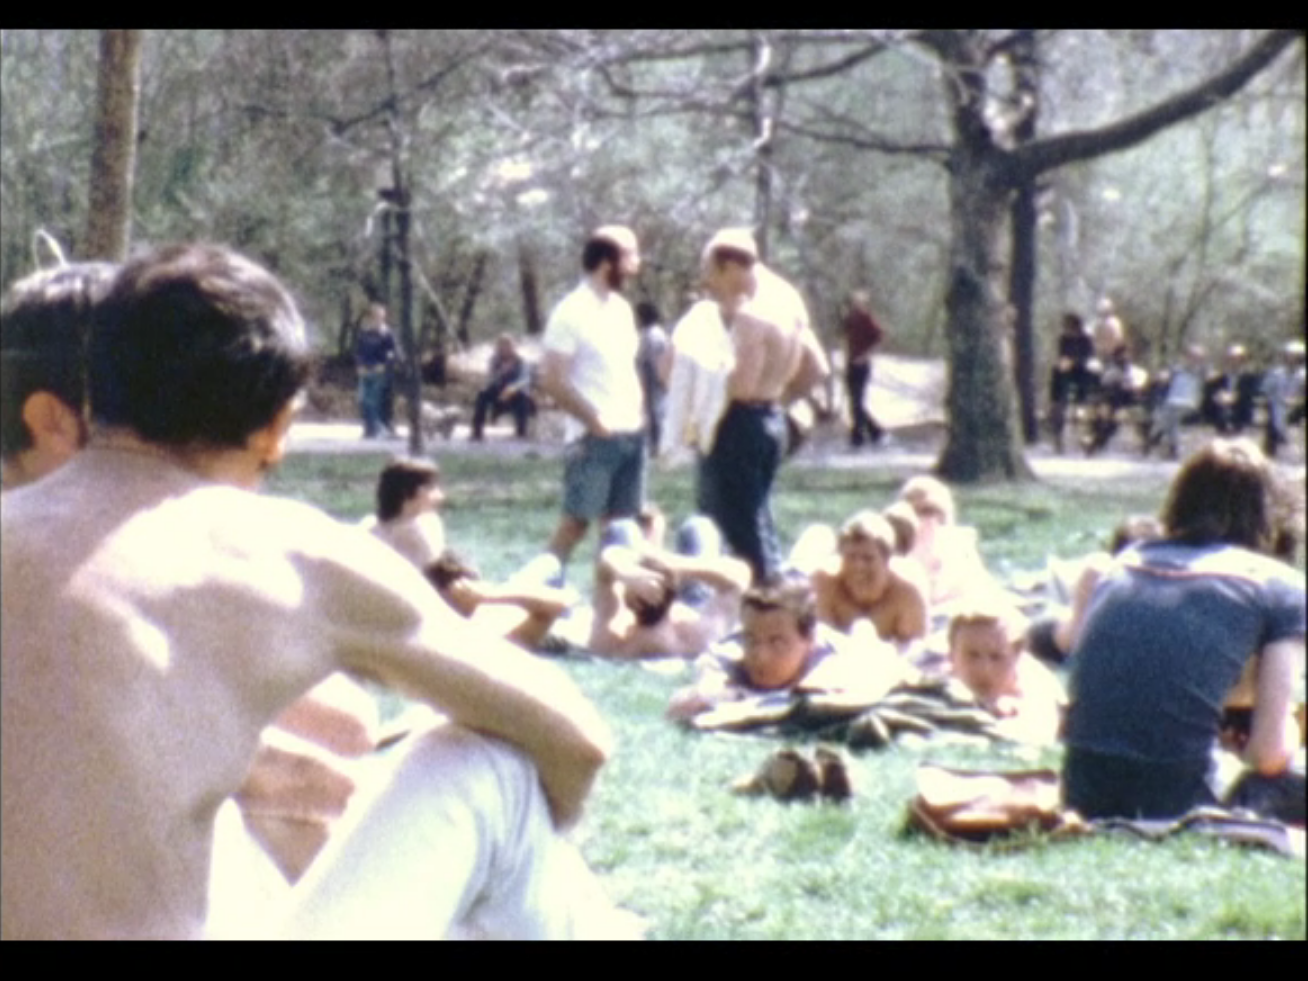 A day at the park. 1974. 8mm film. Still from the item Rudy Grillo Moving Image #2.